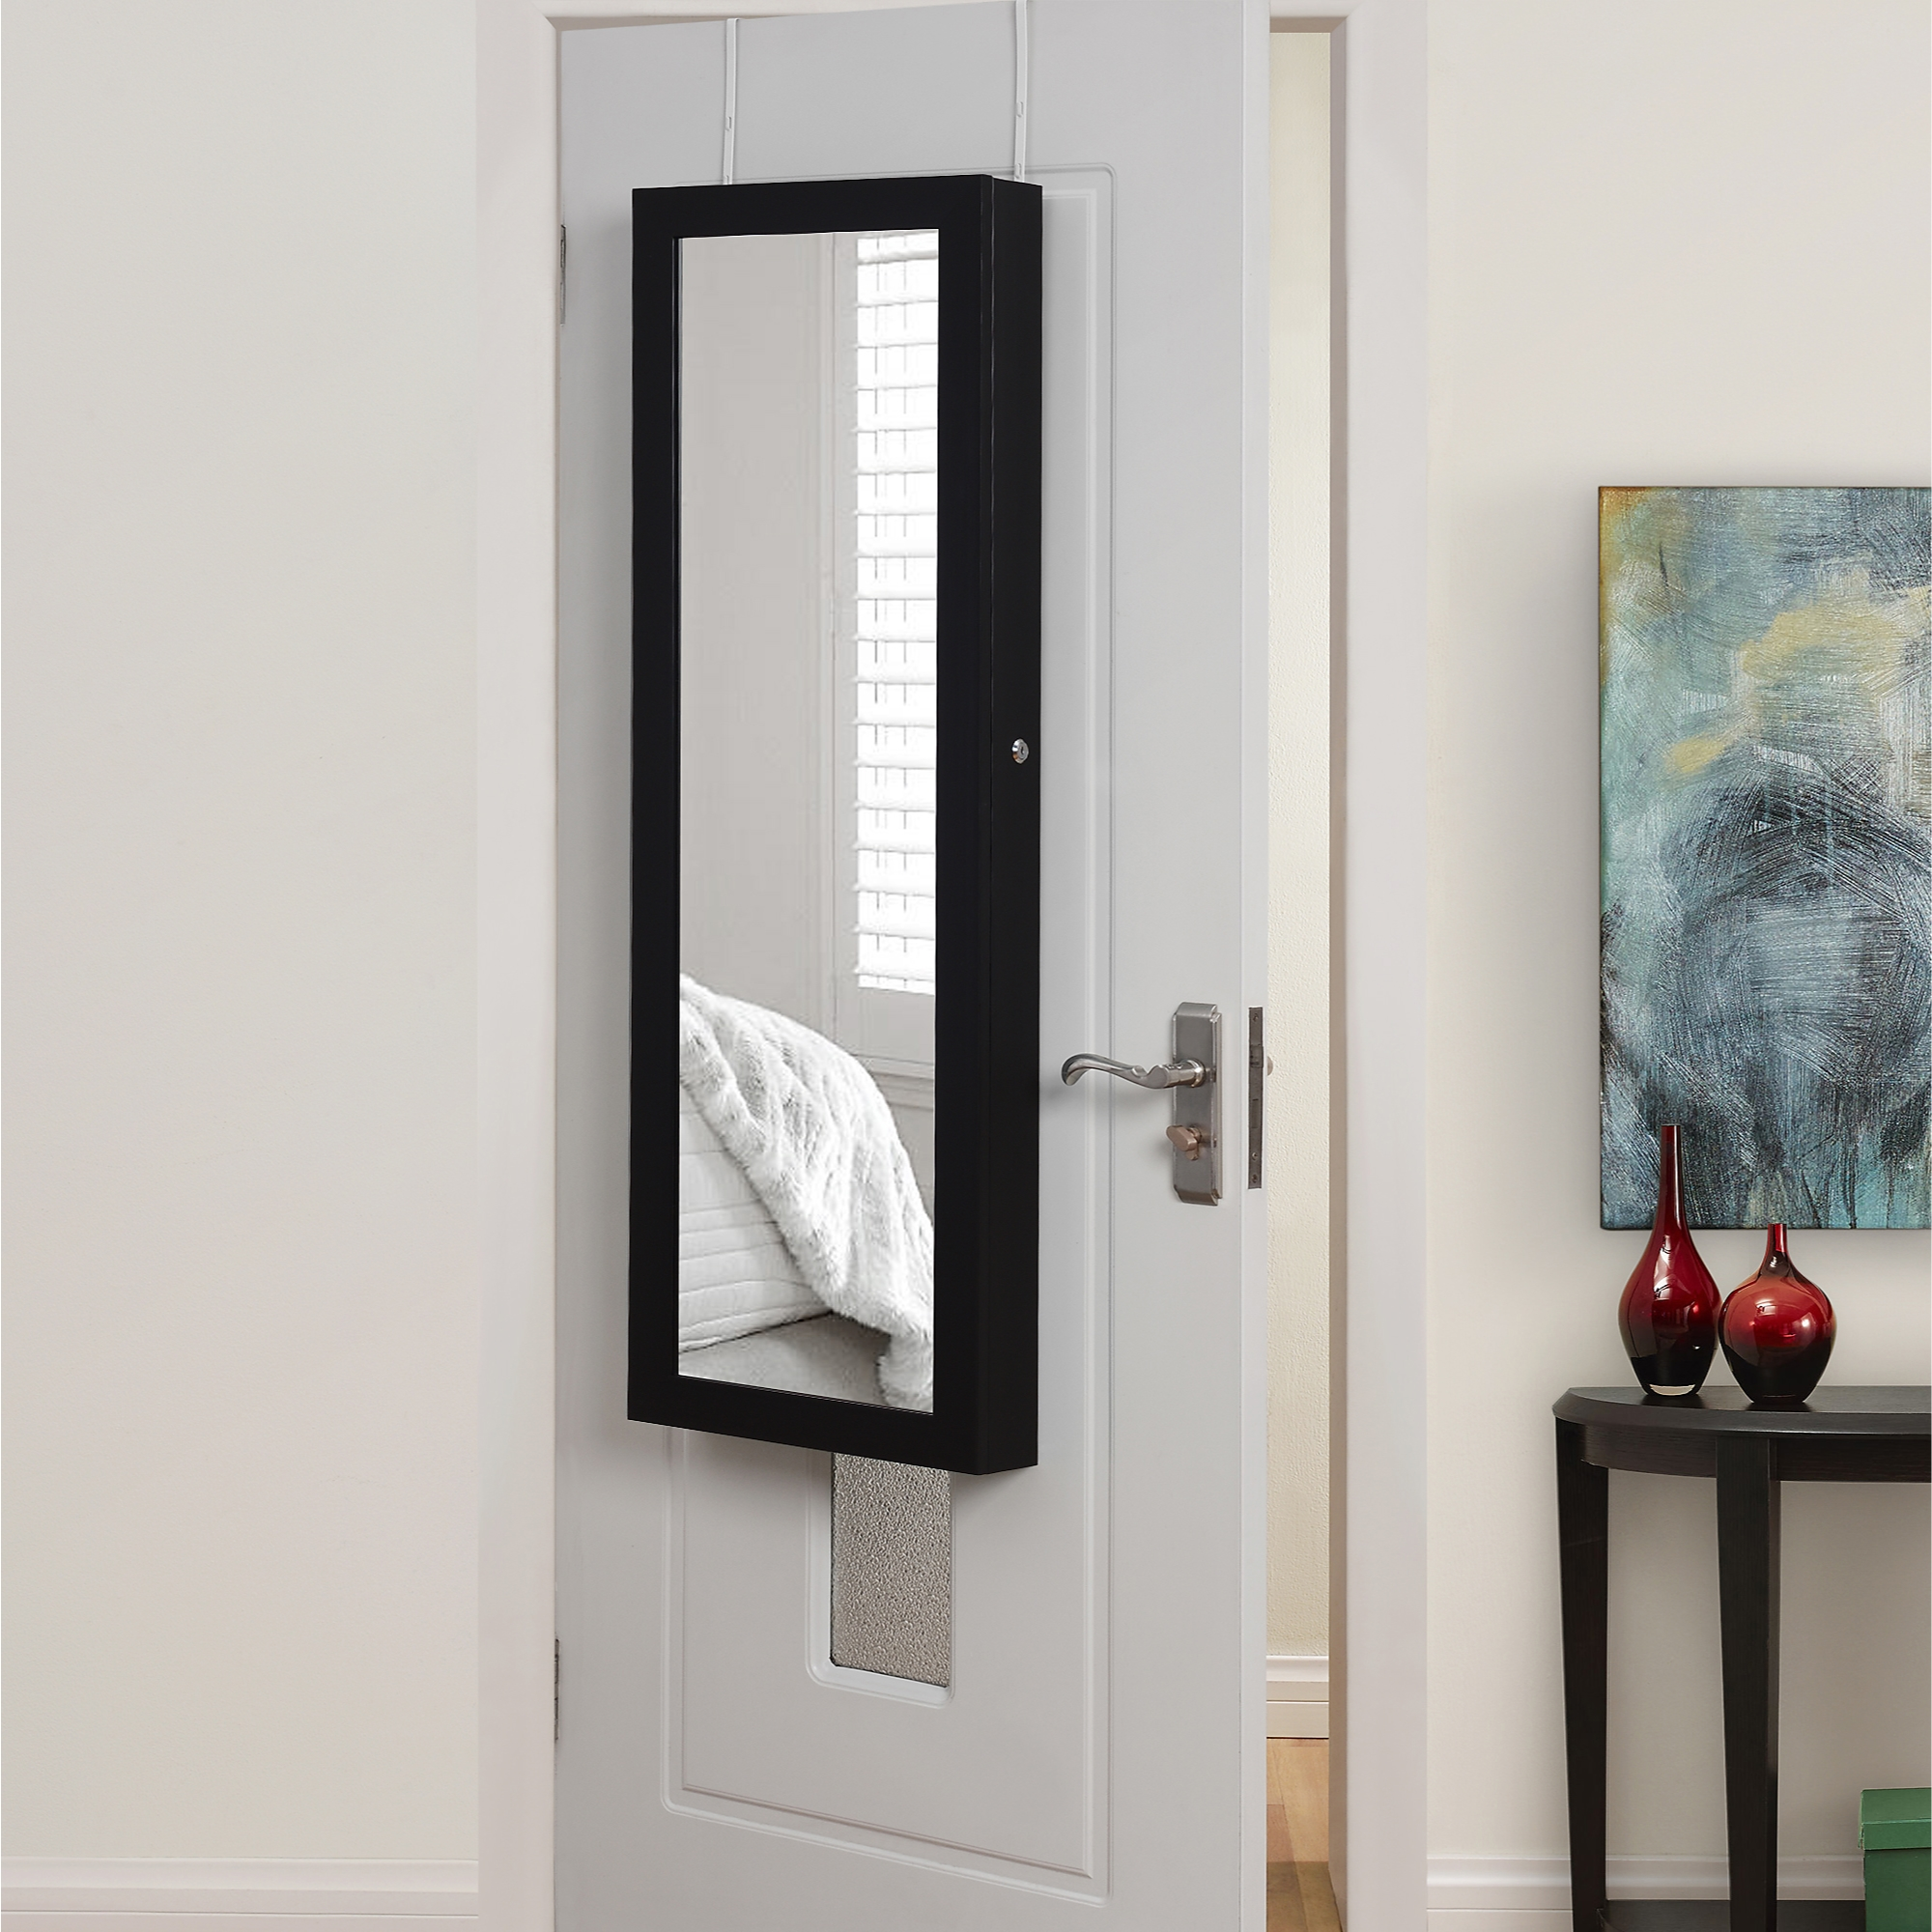 Inspired Home Black Jewelry Furniture Over-the-Door/Wall Mounted